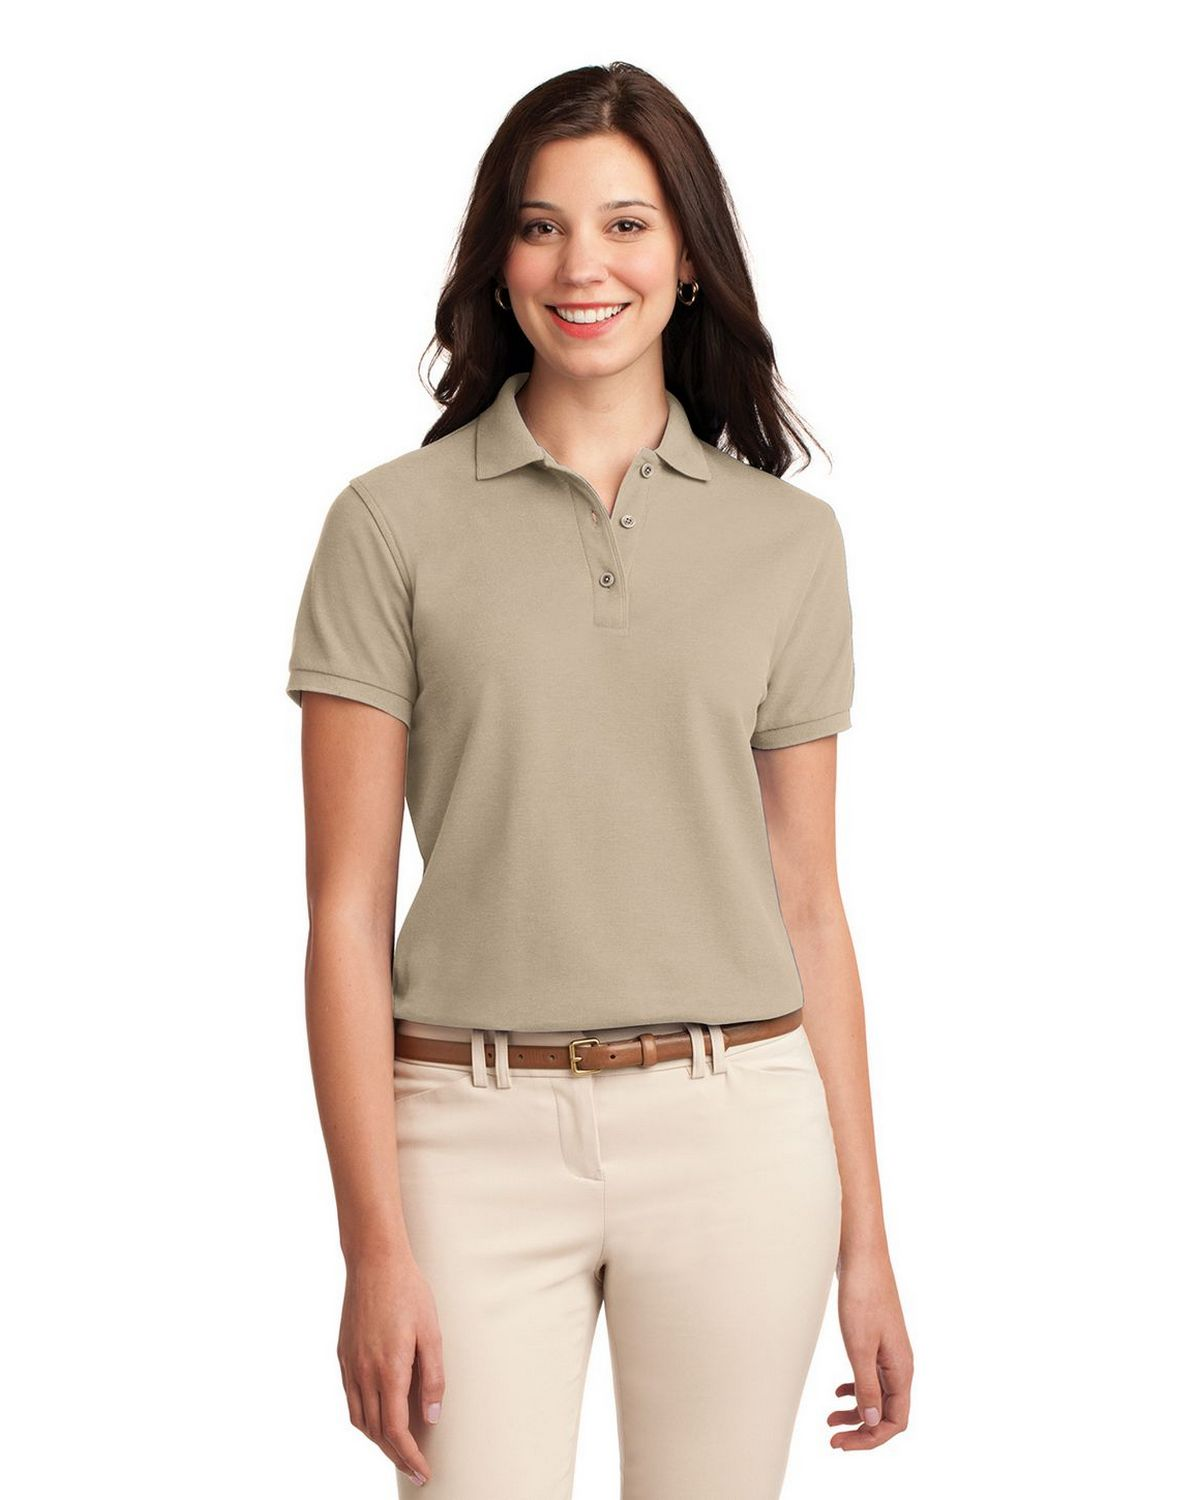 Port Authority L500 Women's Silk Touch Polo - Stone - XS #silk